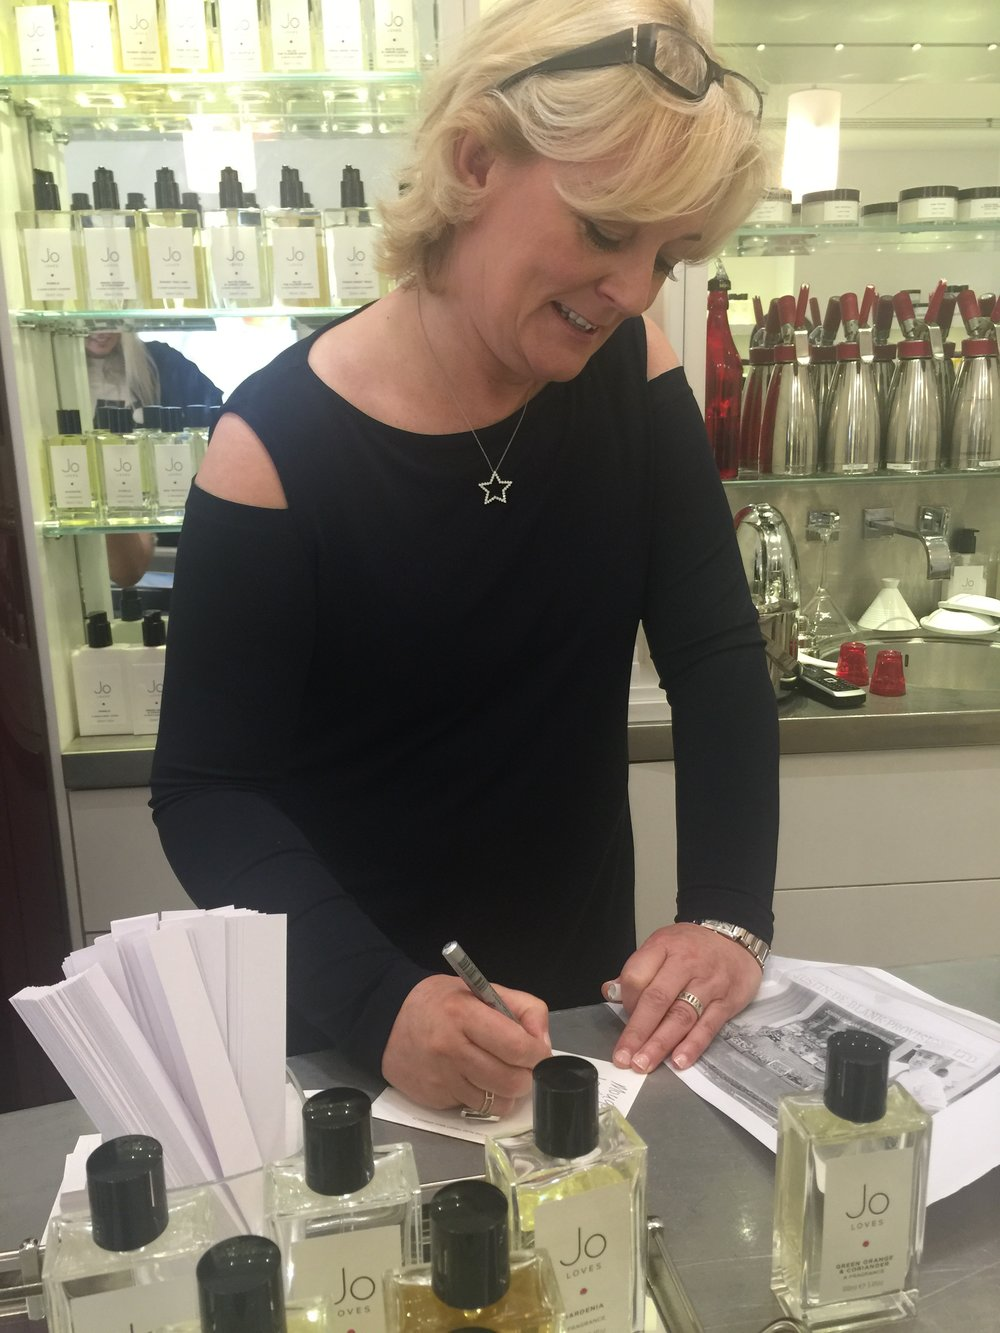 Jo Malone in her Jo Loves store London